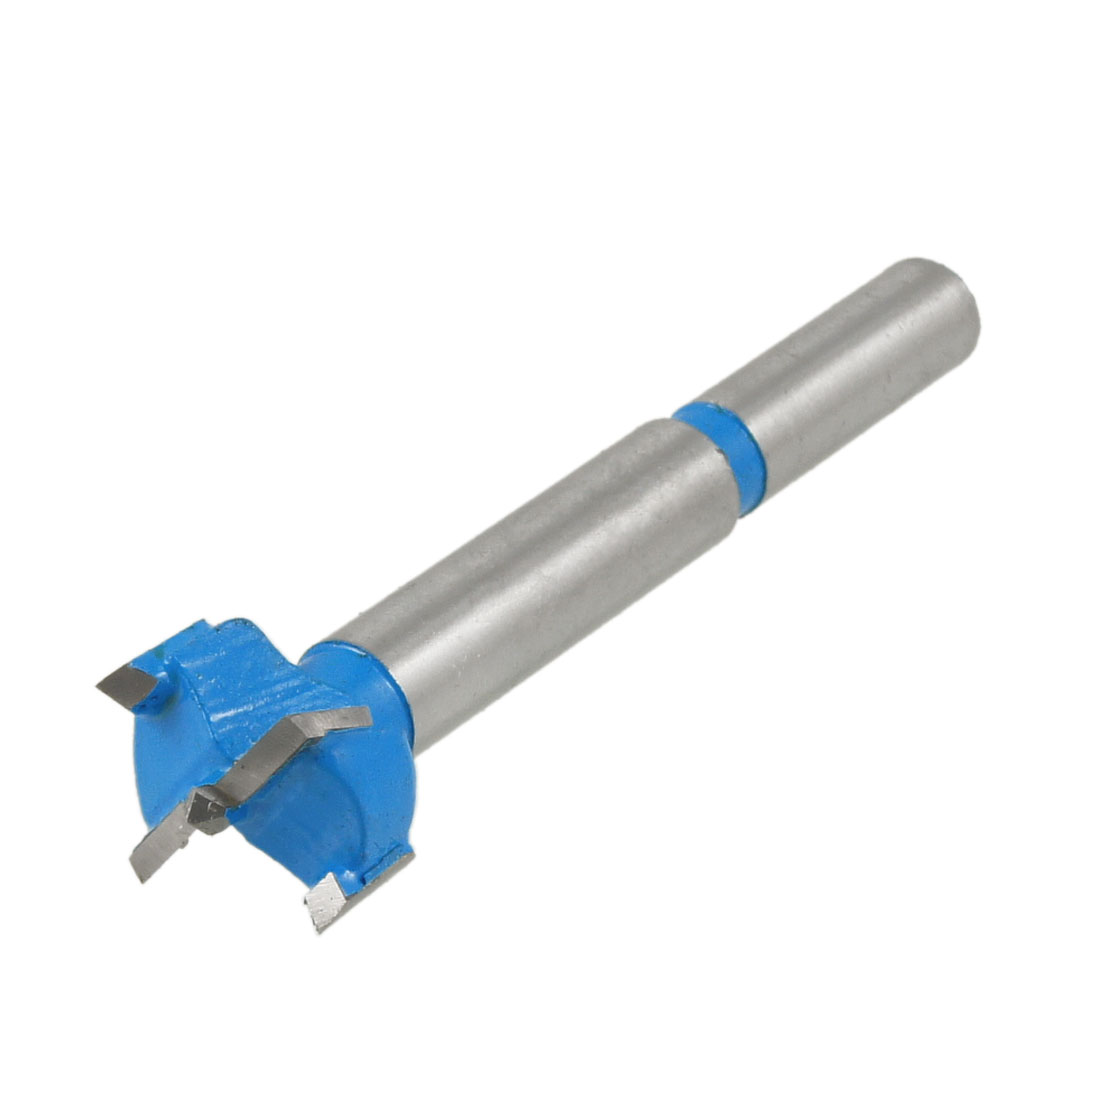 Carbide Tipped Hinge 19mm Diameter Blue Gray Boring Bit Drill Tool